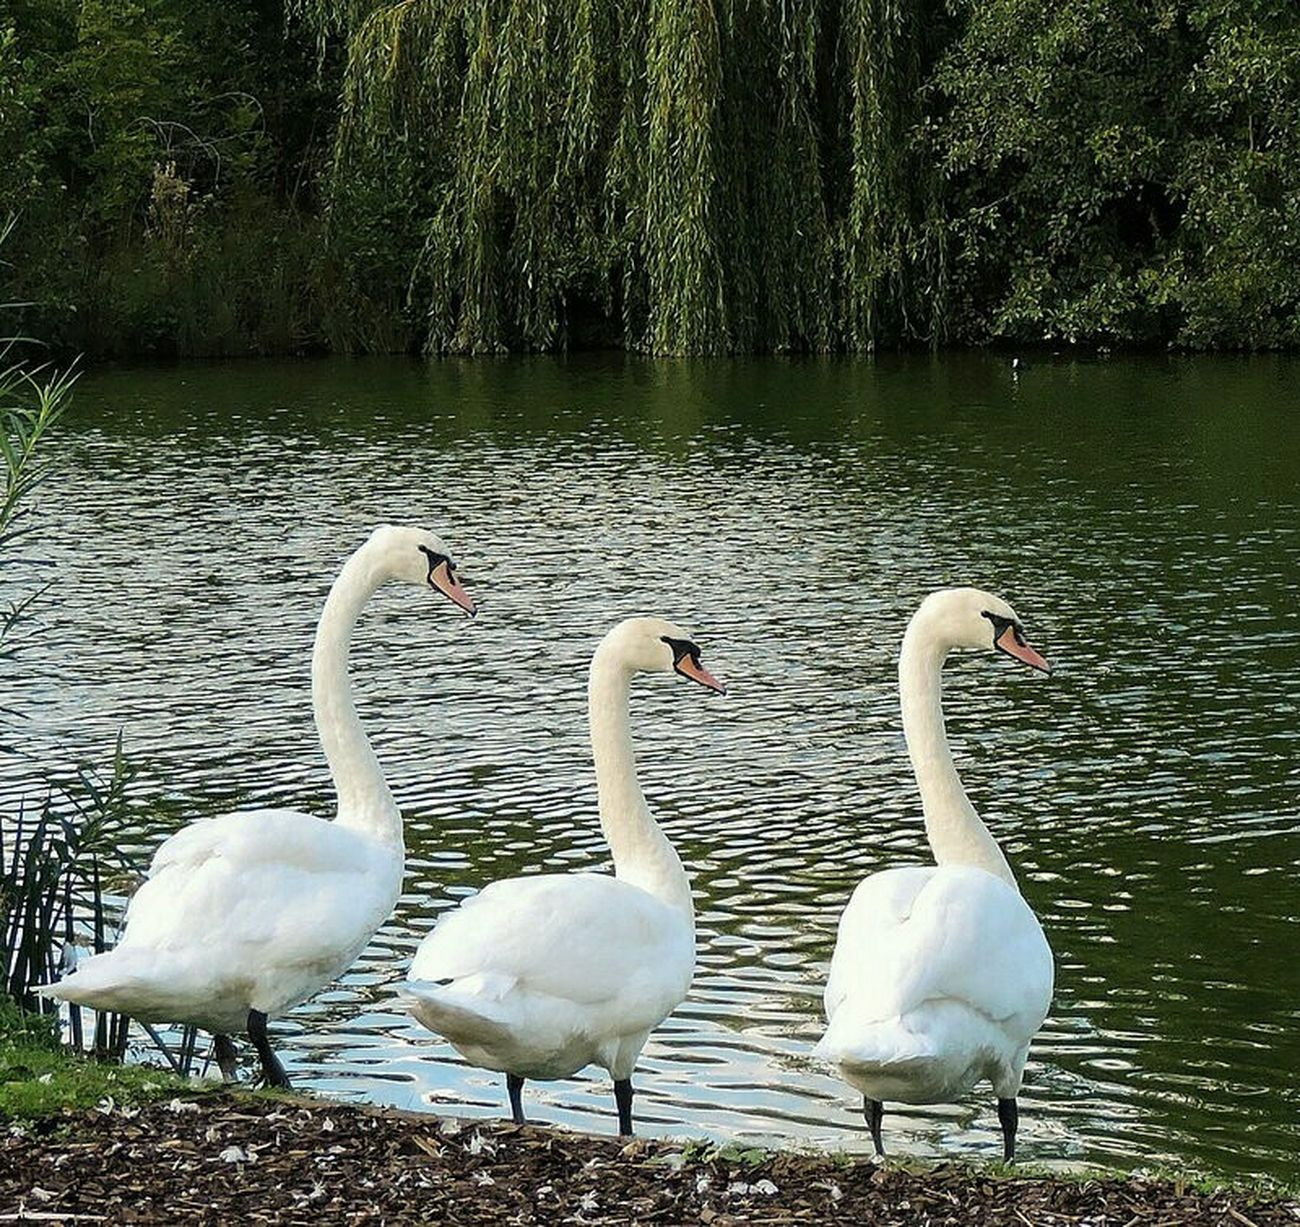 Taking Photos Hello World Enjoying Life Beautiful Nature Naturelovers Bird Photography EyeEm Birds Birdwatching Upcloseandpersonal Outandabout Rural Landscape Water Reflections Waterscape Swans White Swan Swansrulethelake Beauty In Nature Beautiful Place